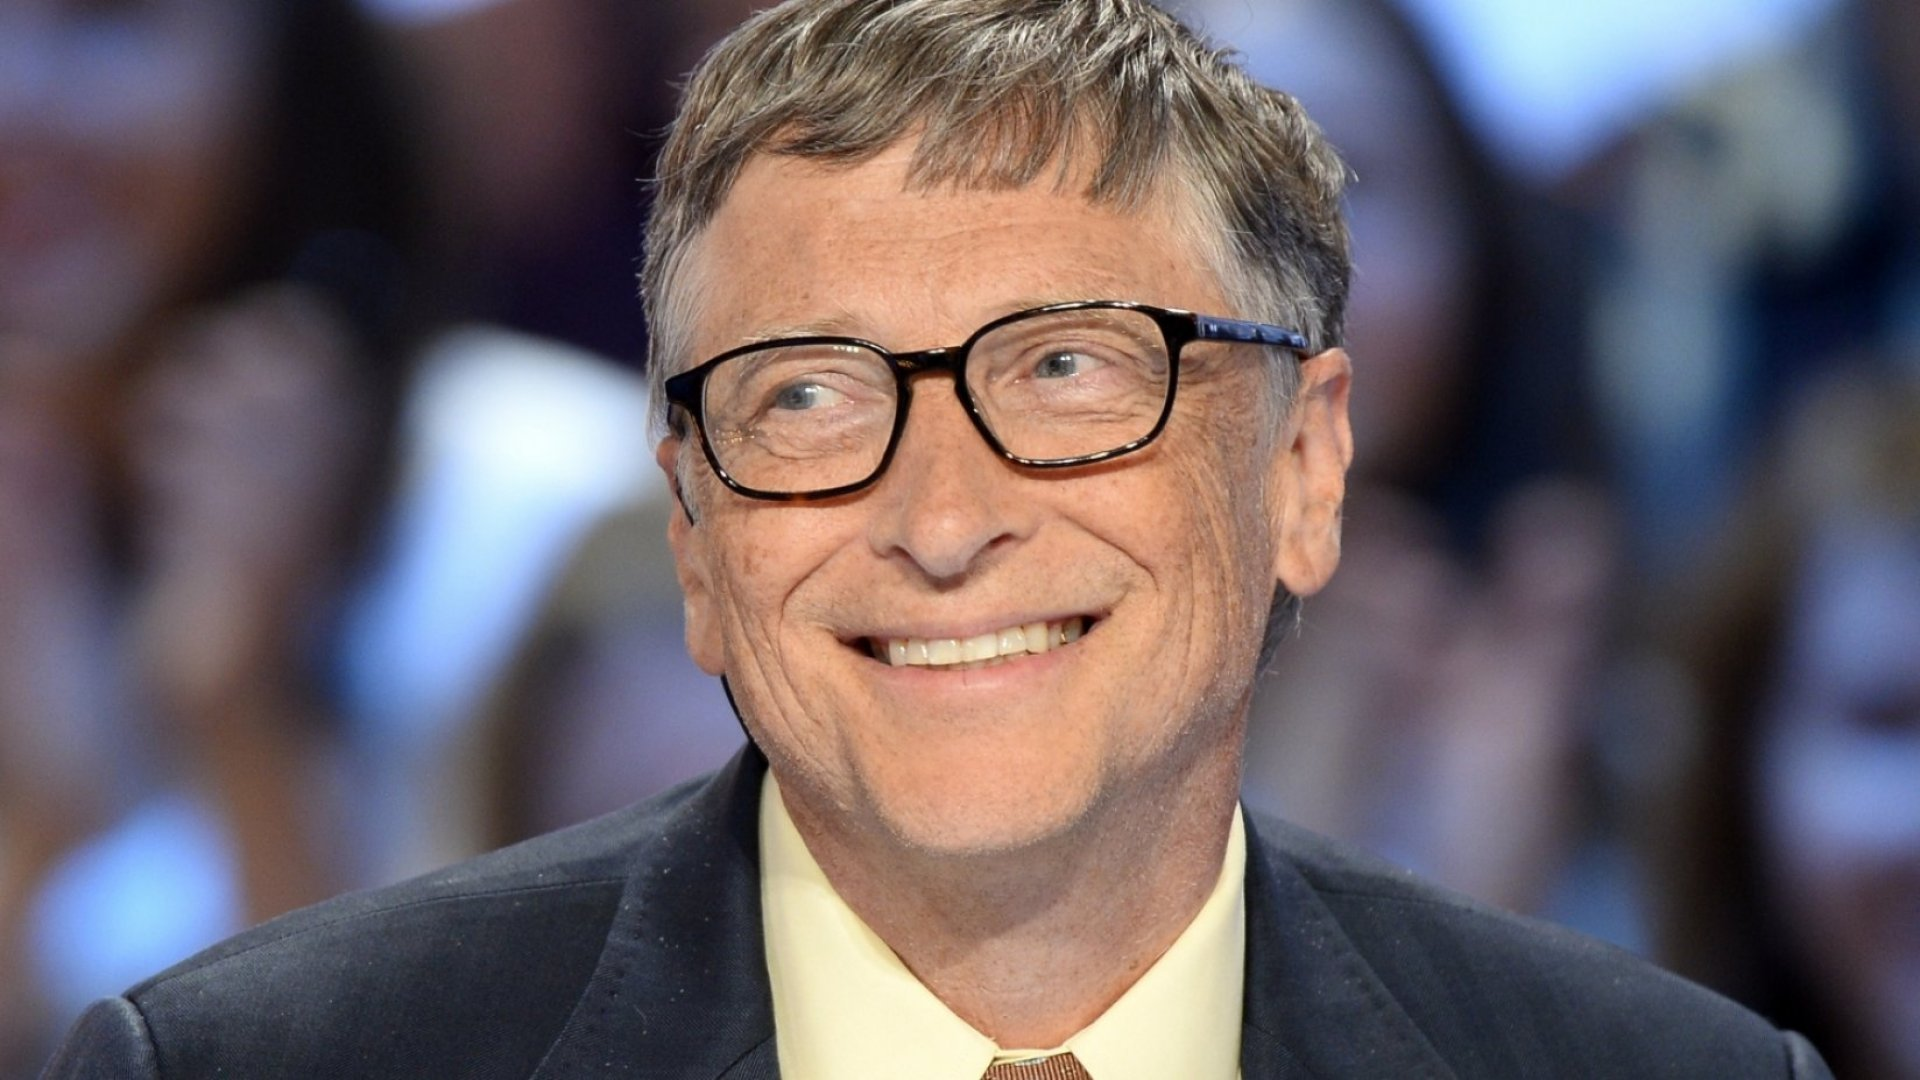 The Productivity Secret Behind Bill Gates's Incredible Success